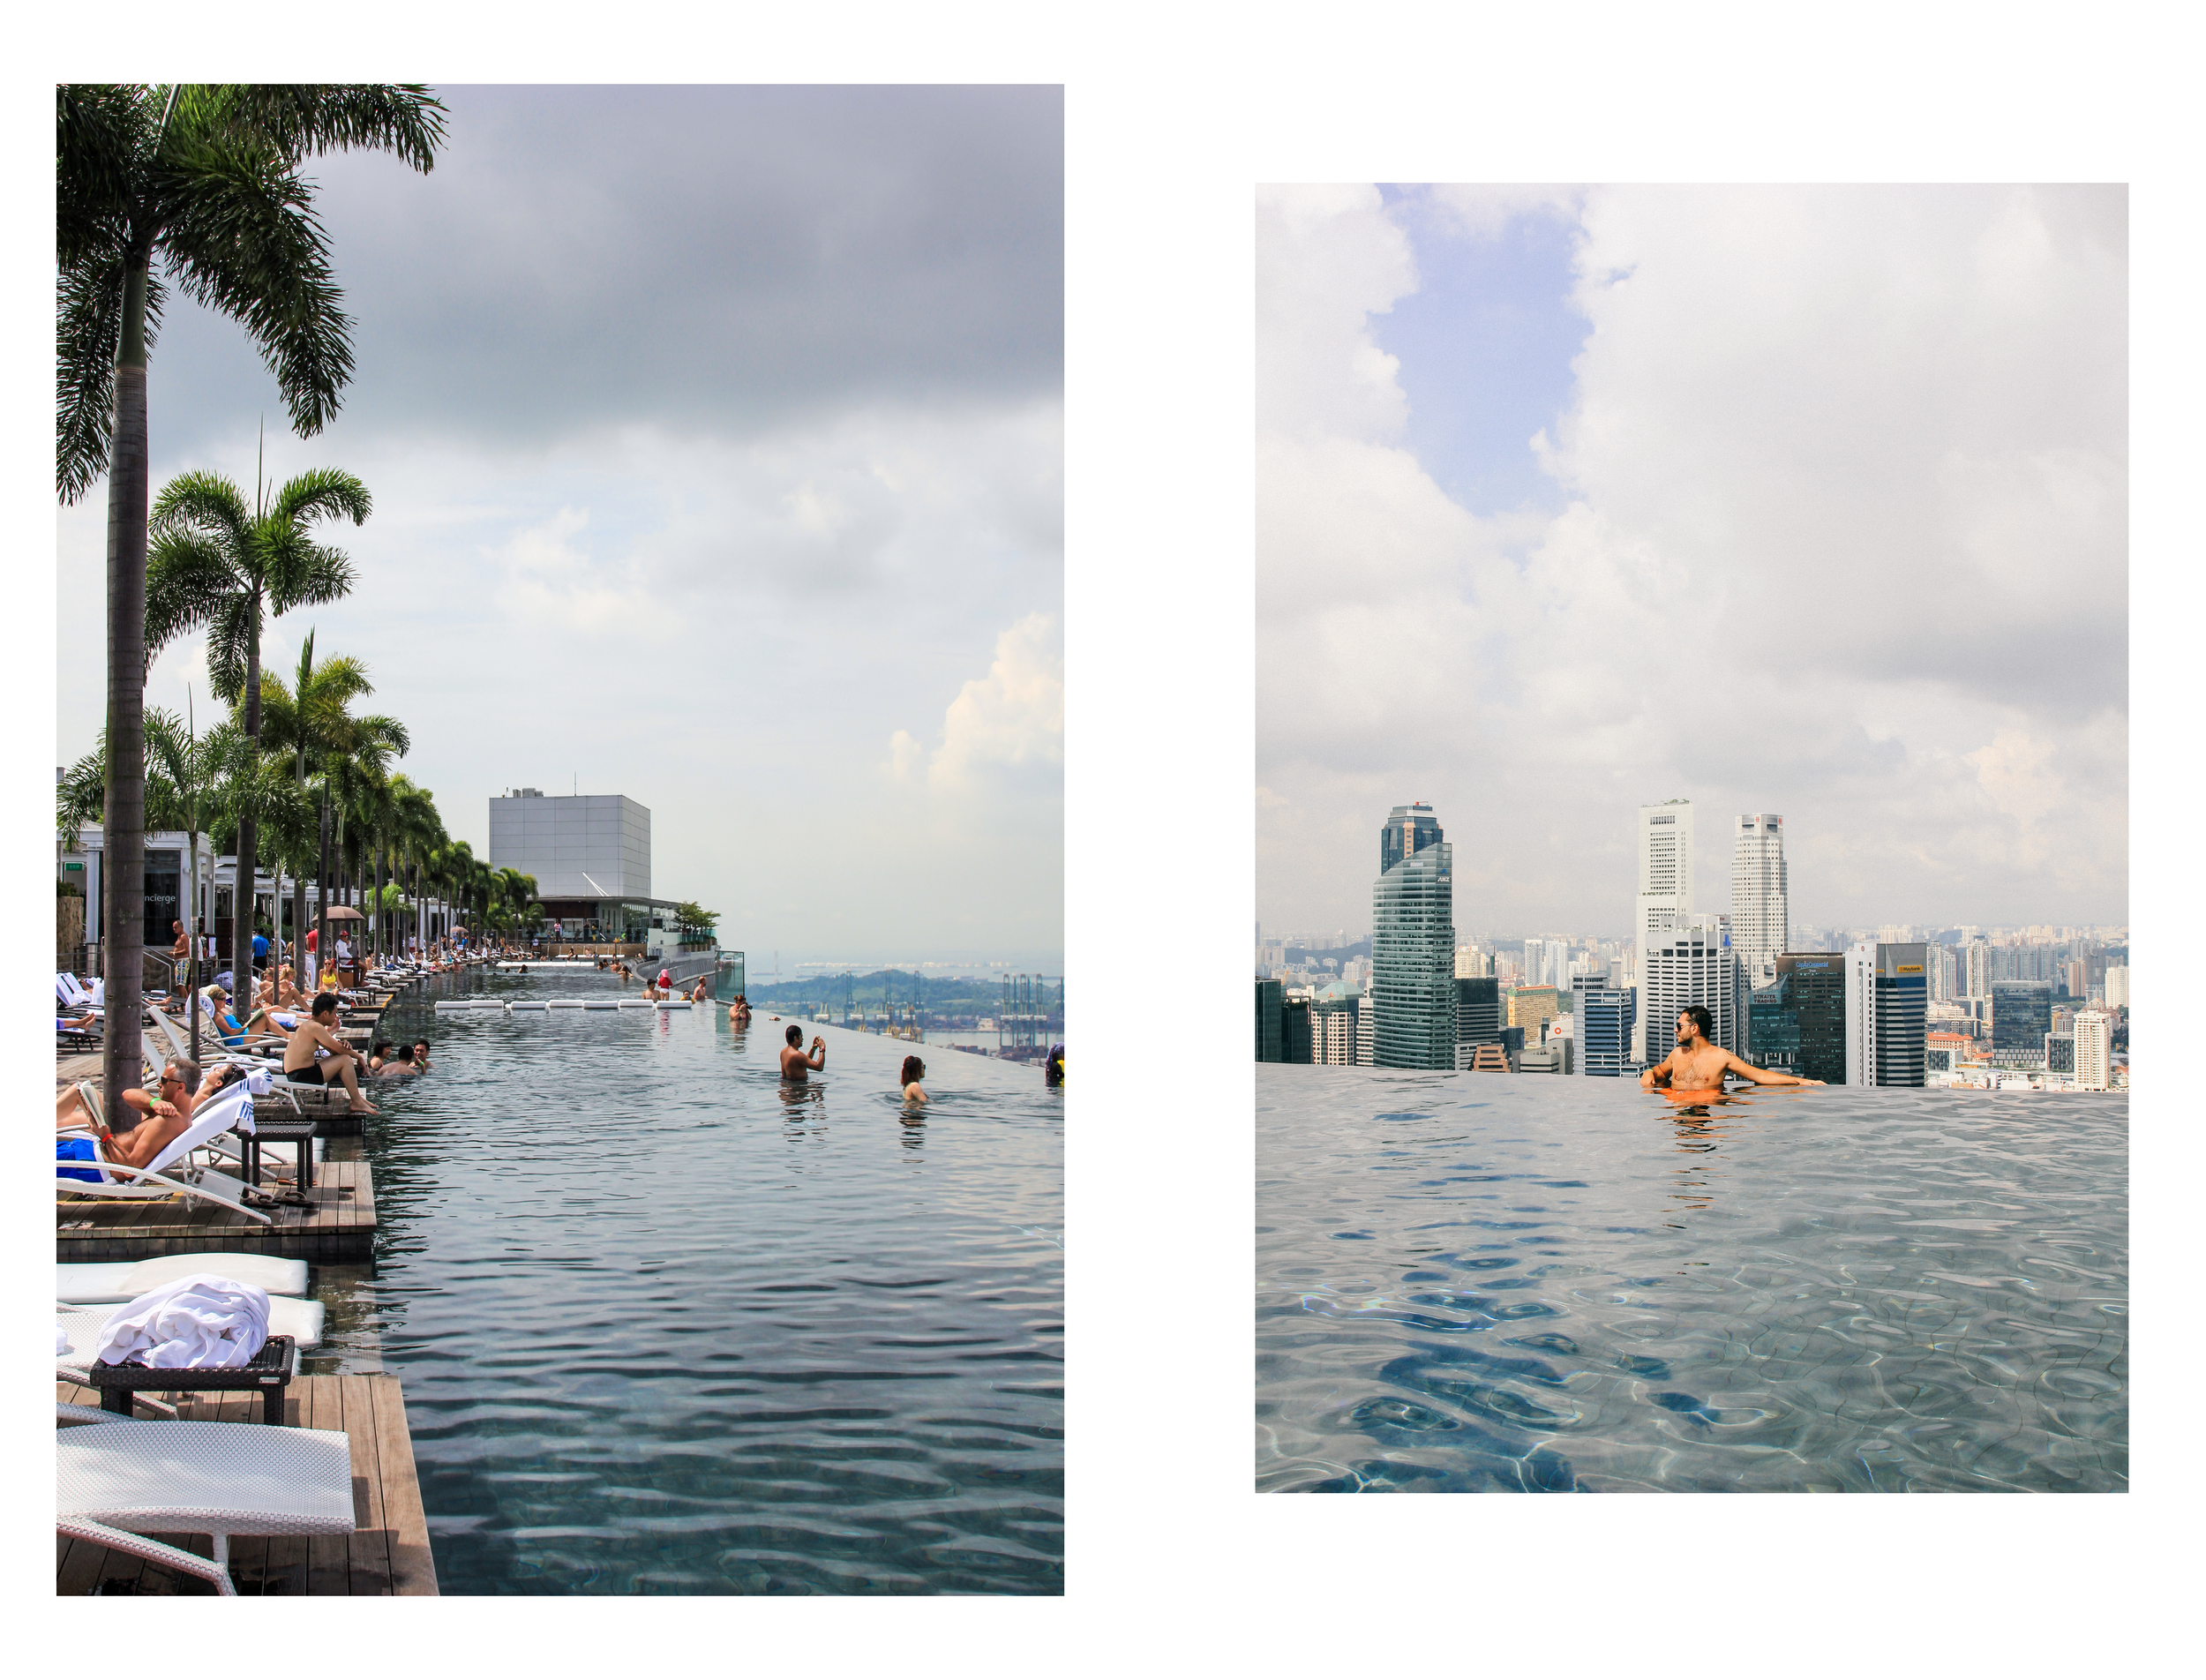 Marina-Bay-Sands-hotel-singapore.png